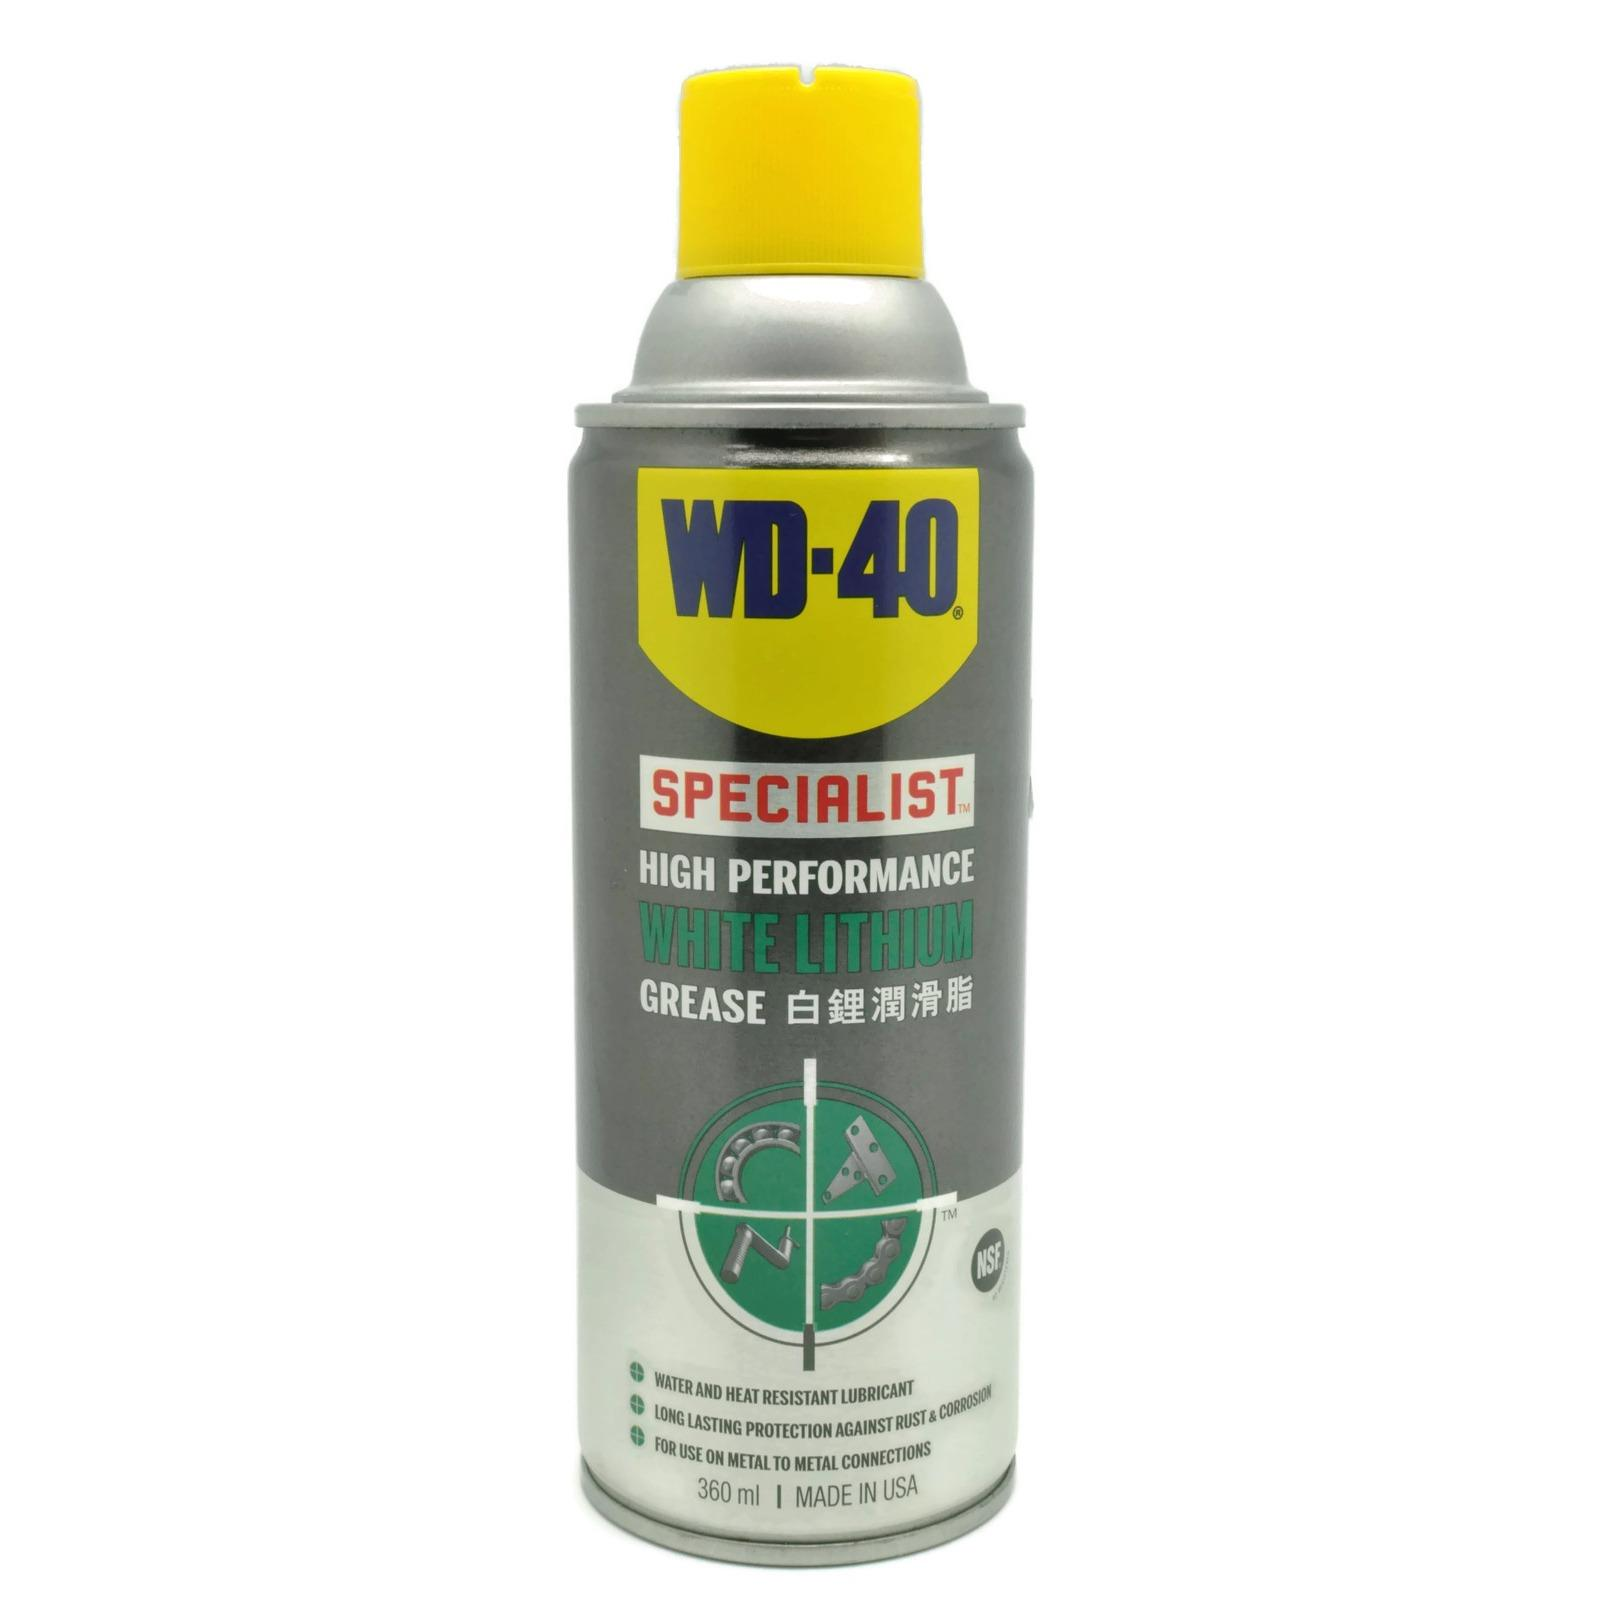 Sale Wd40 Wd 40 Specialist High Performance White Lithium Grease Online On Singapore